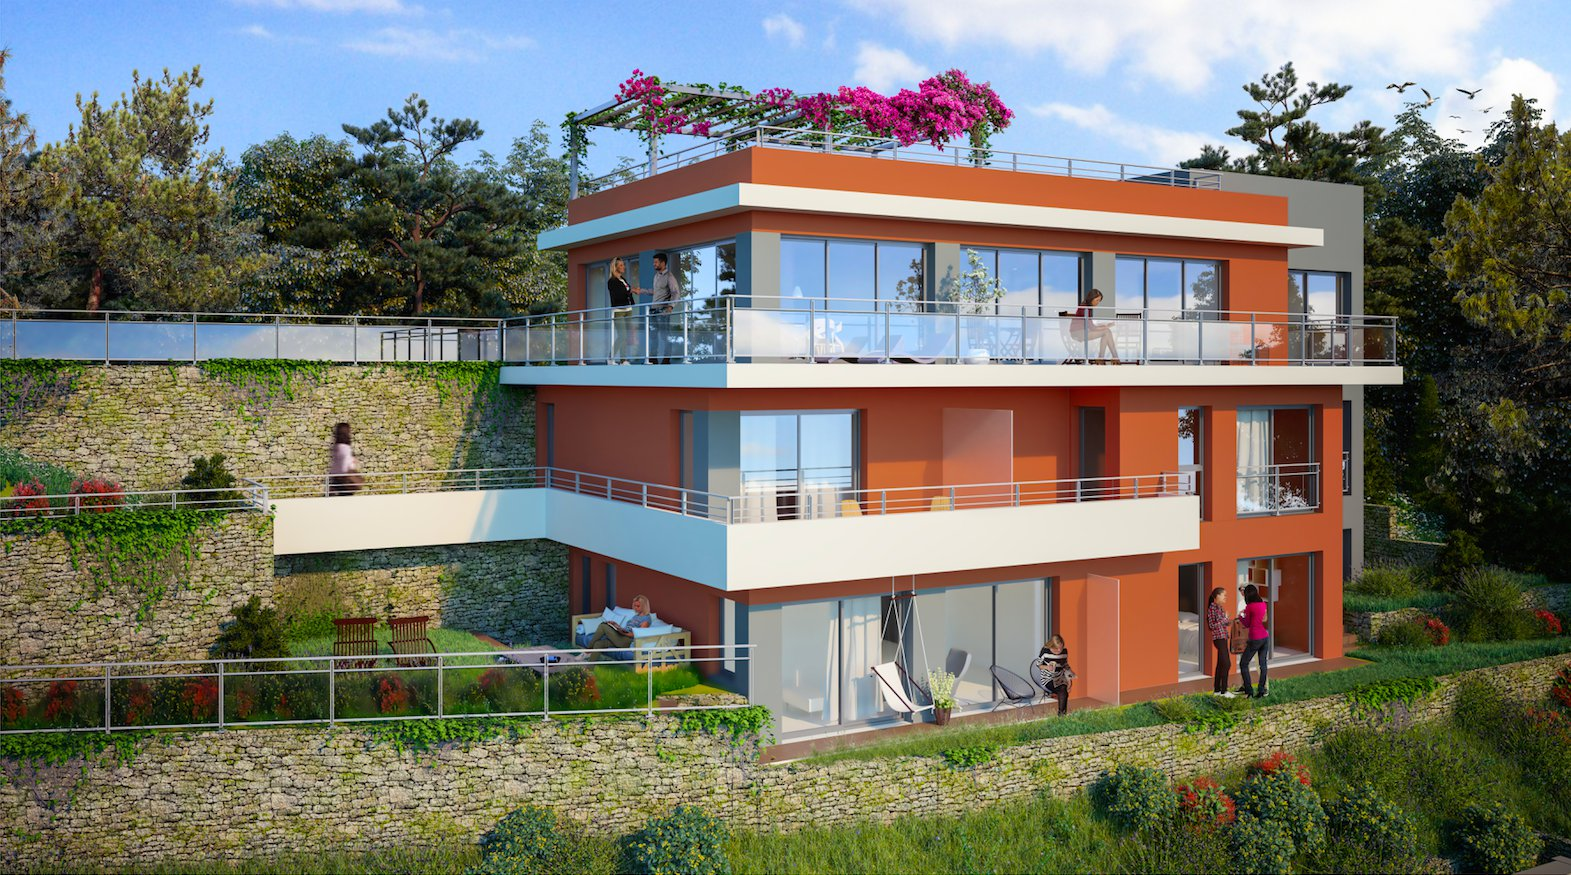 ROQUEBRUNE/CABBÉ:  3-BEDROOM APARTMENT WITH SEA VIEW AND GARDEN